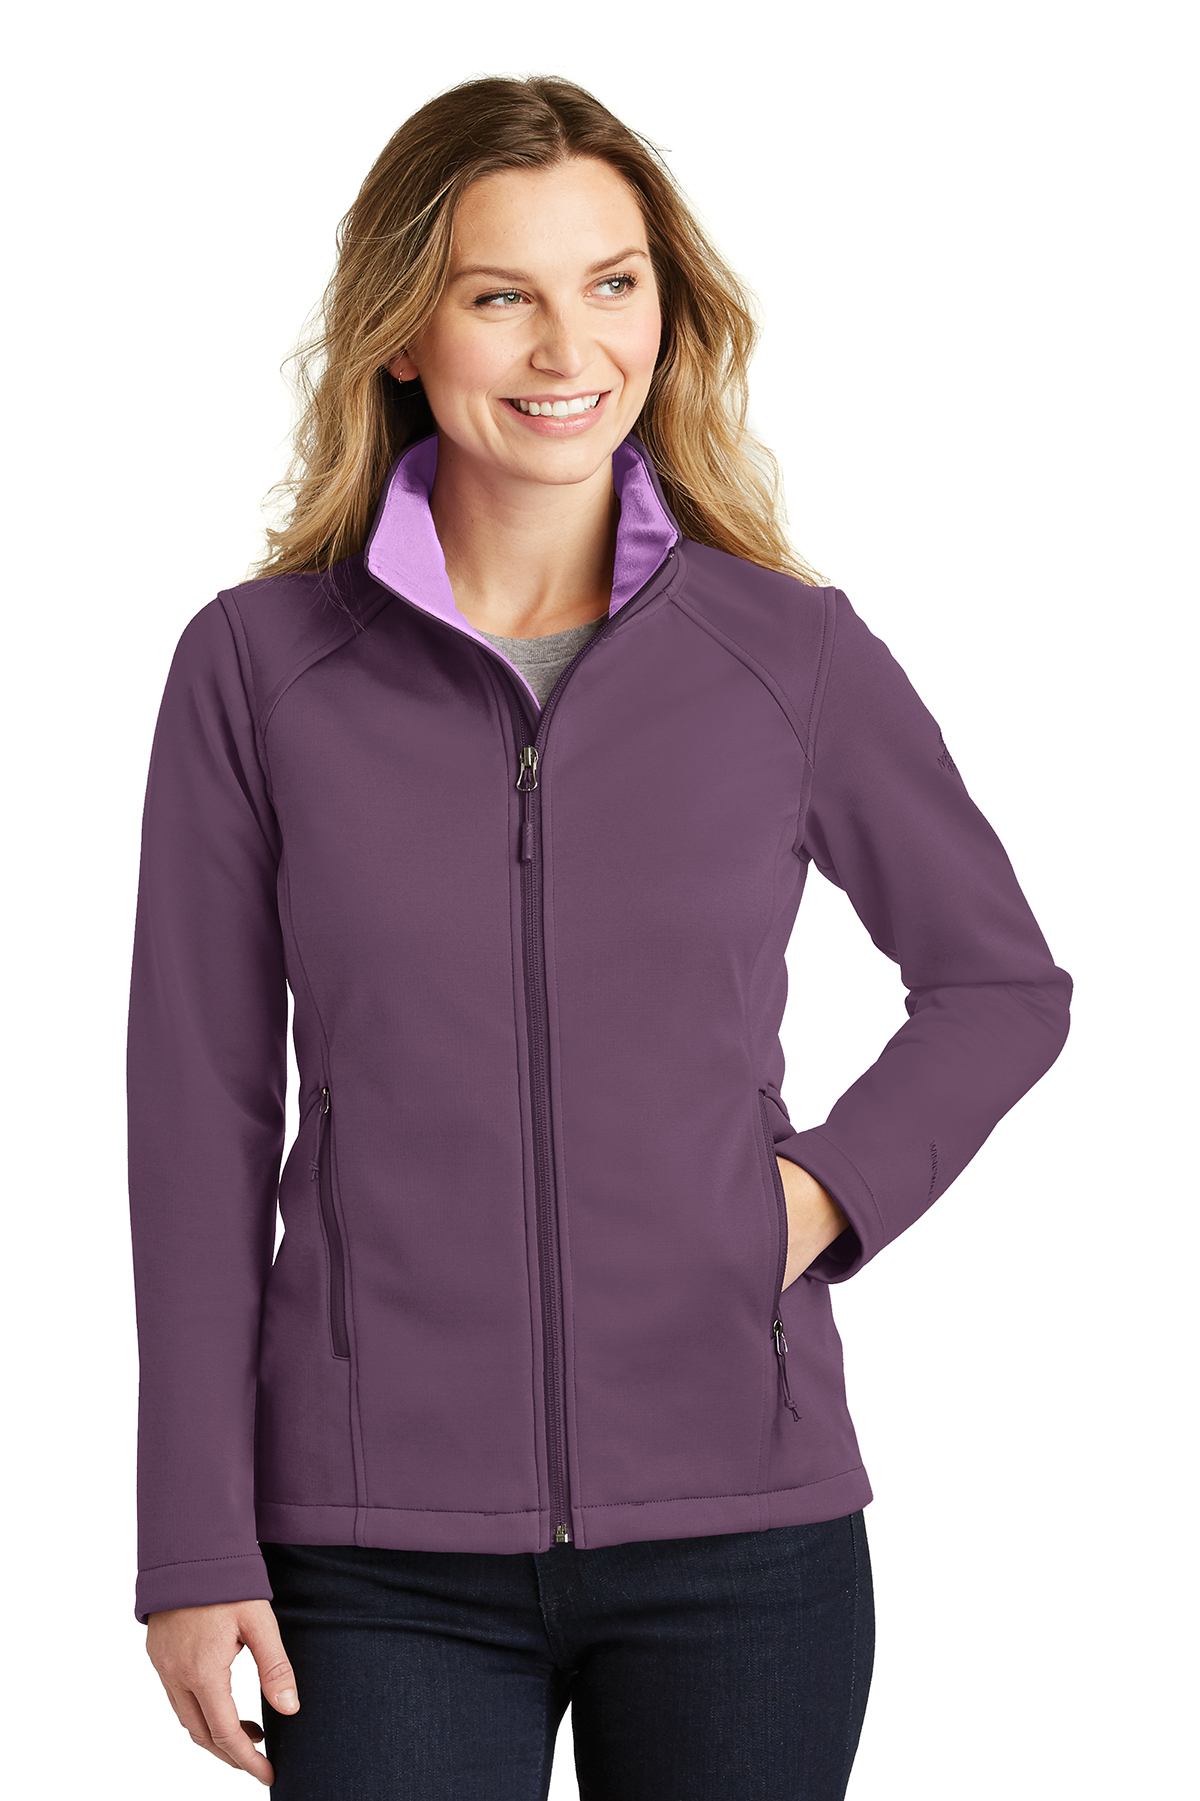 7f104c9034a2 The North Face® Ladies Ridgeline Soft Shell Jacket